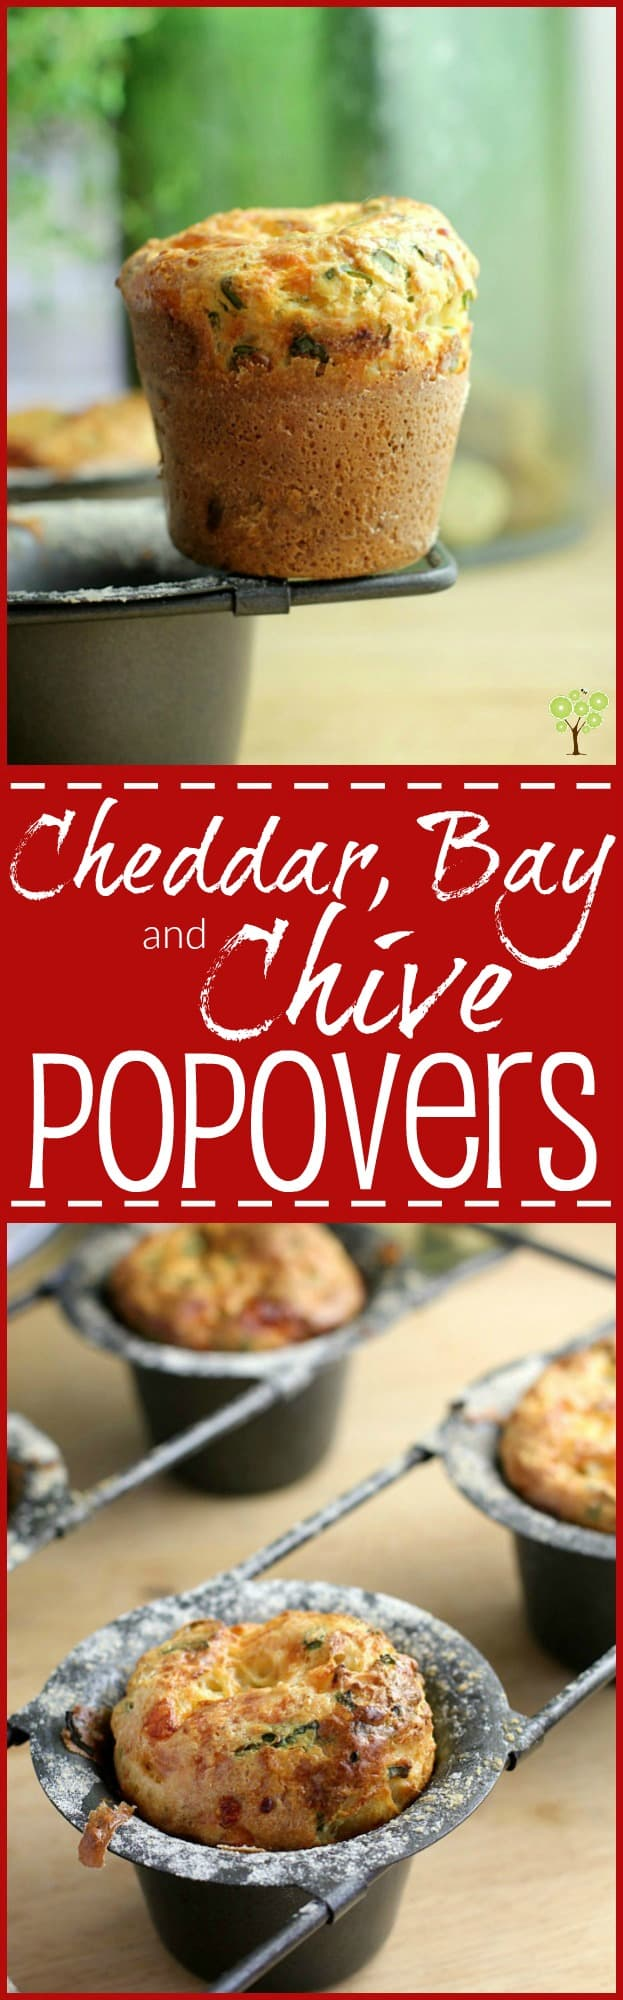 Cheddar Bay and Chive Popovers. Cheesy puffs with seafood seasoning and fresh chive http://wp.me/p4qC4h-3ll